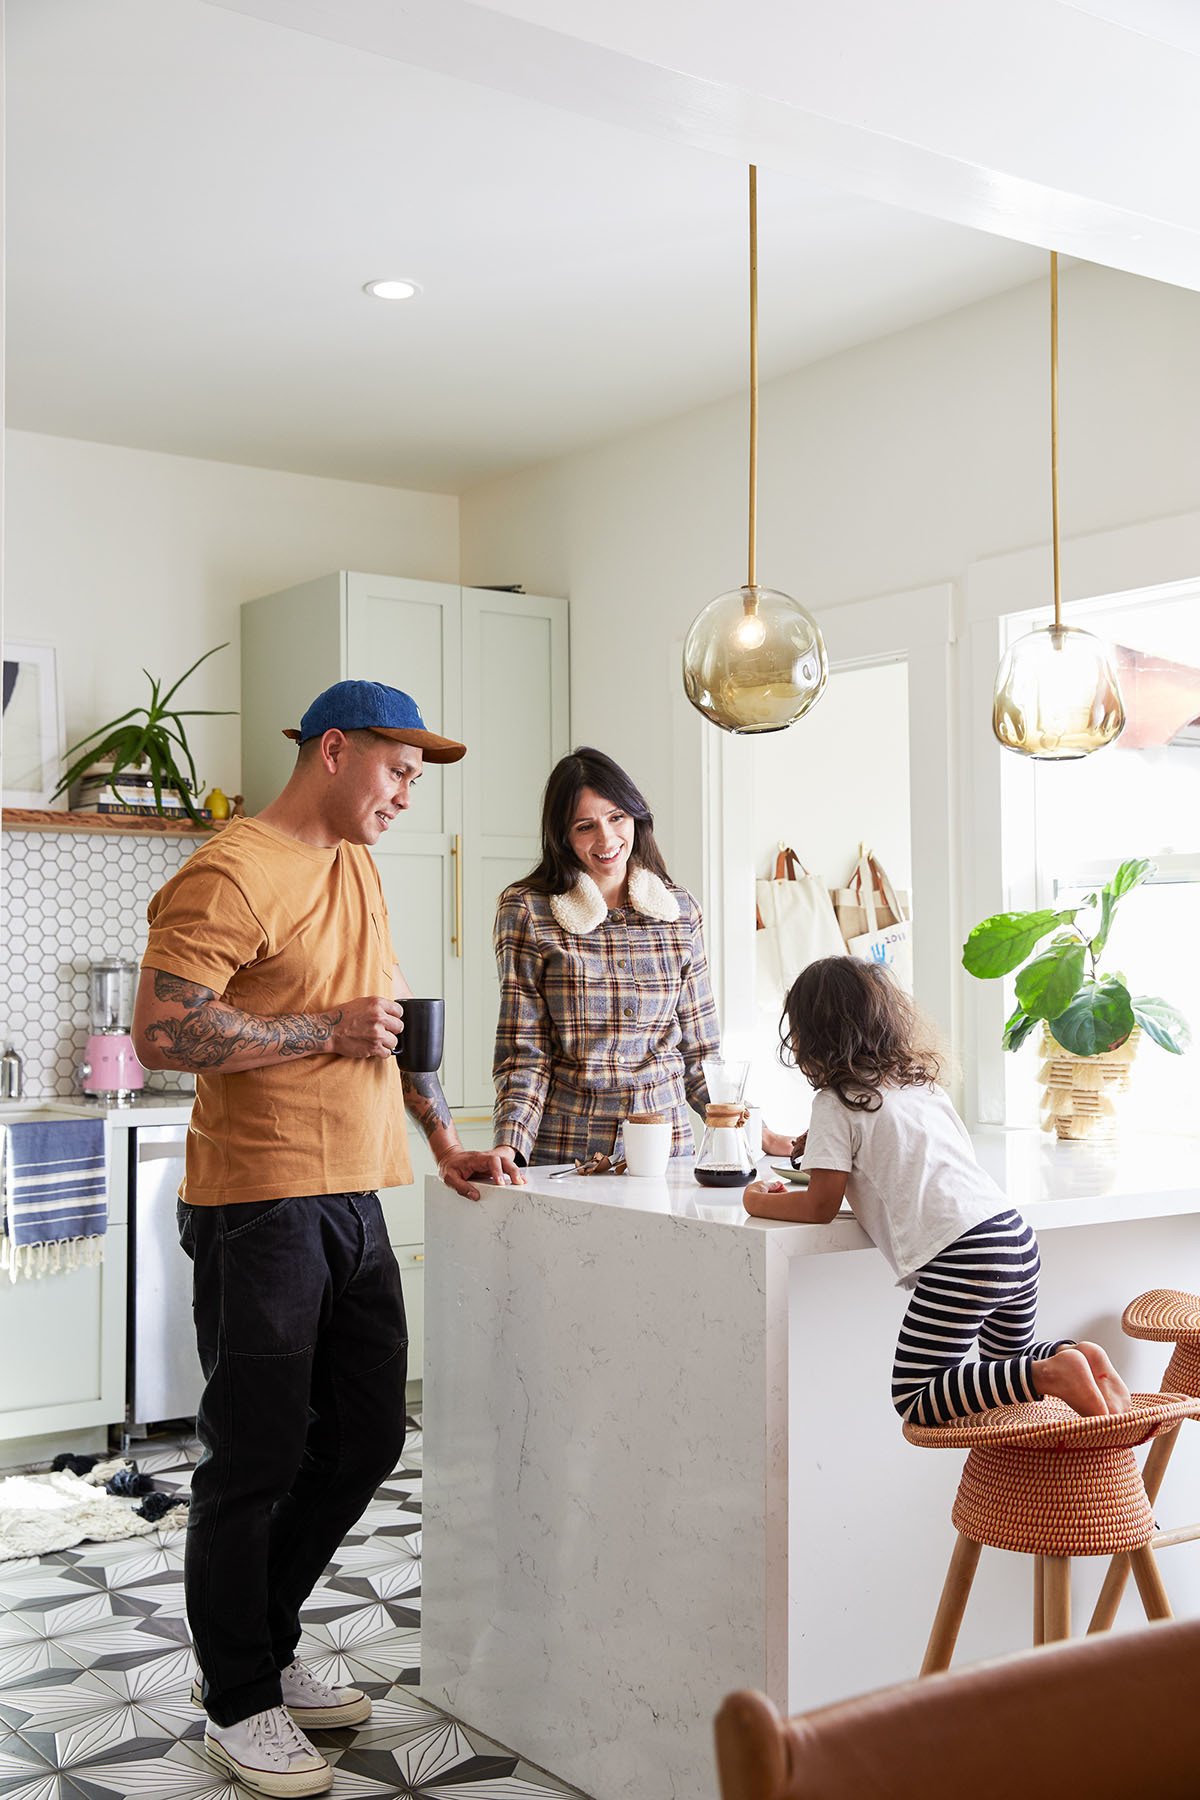 Eric, Angela and Tallie at home in their modern kitchen.